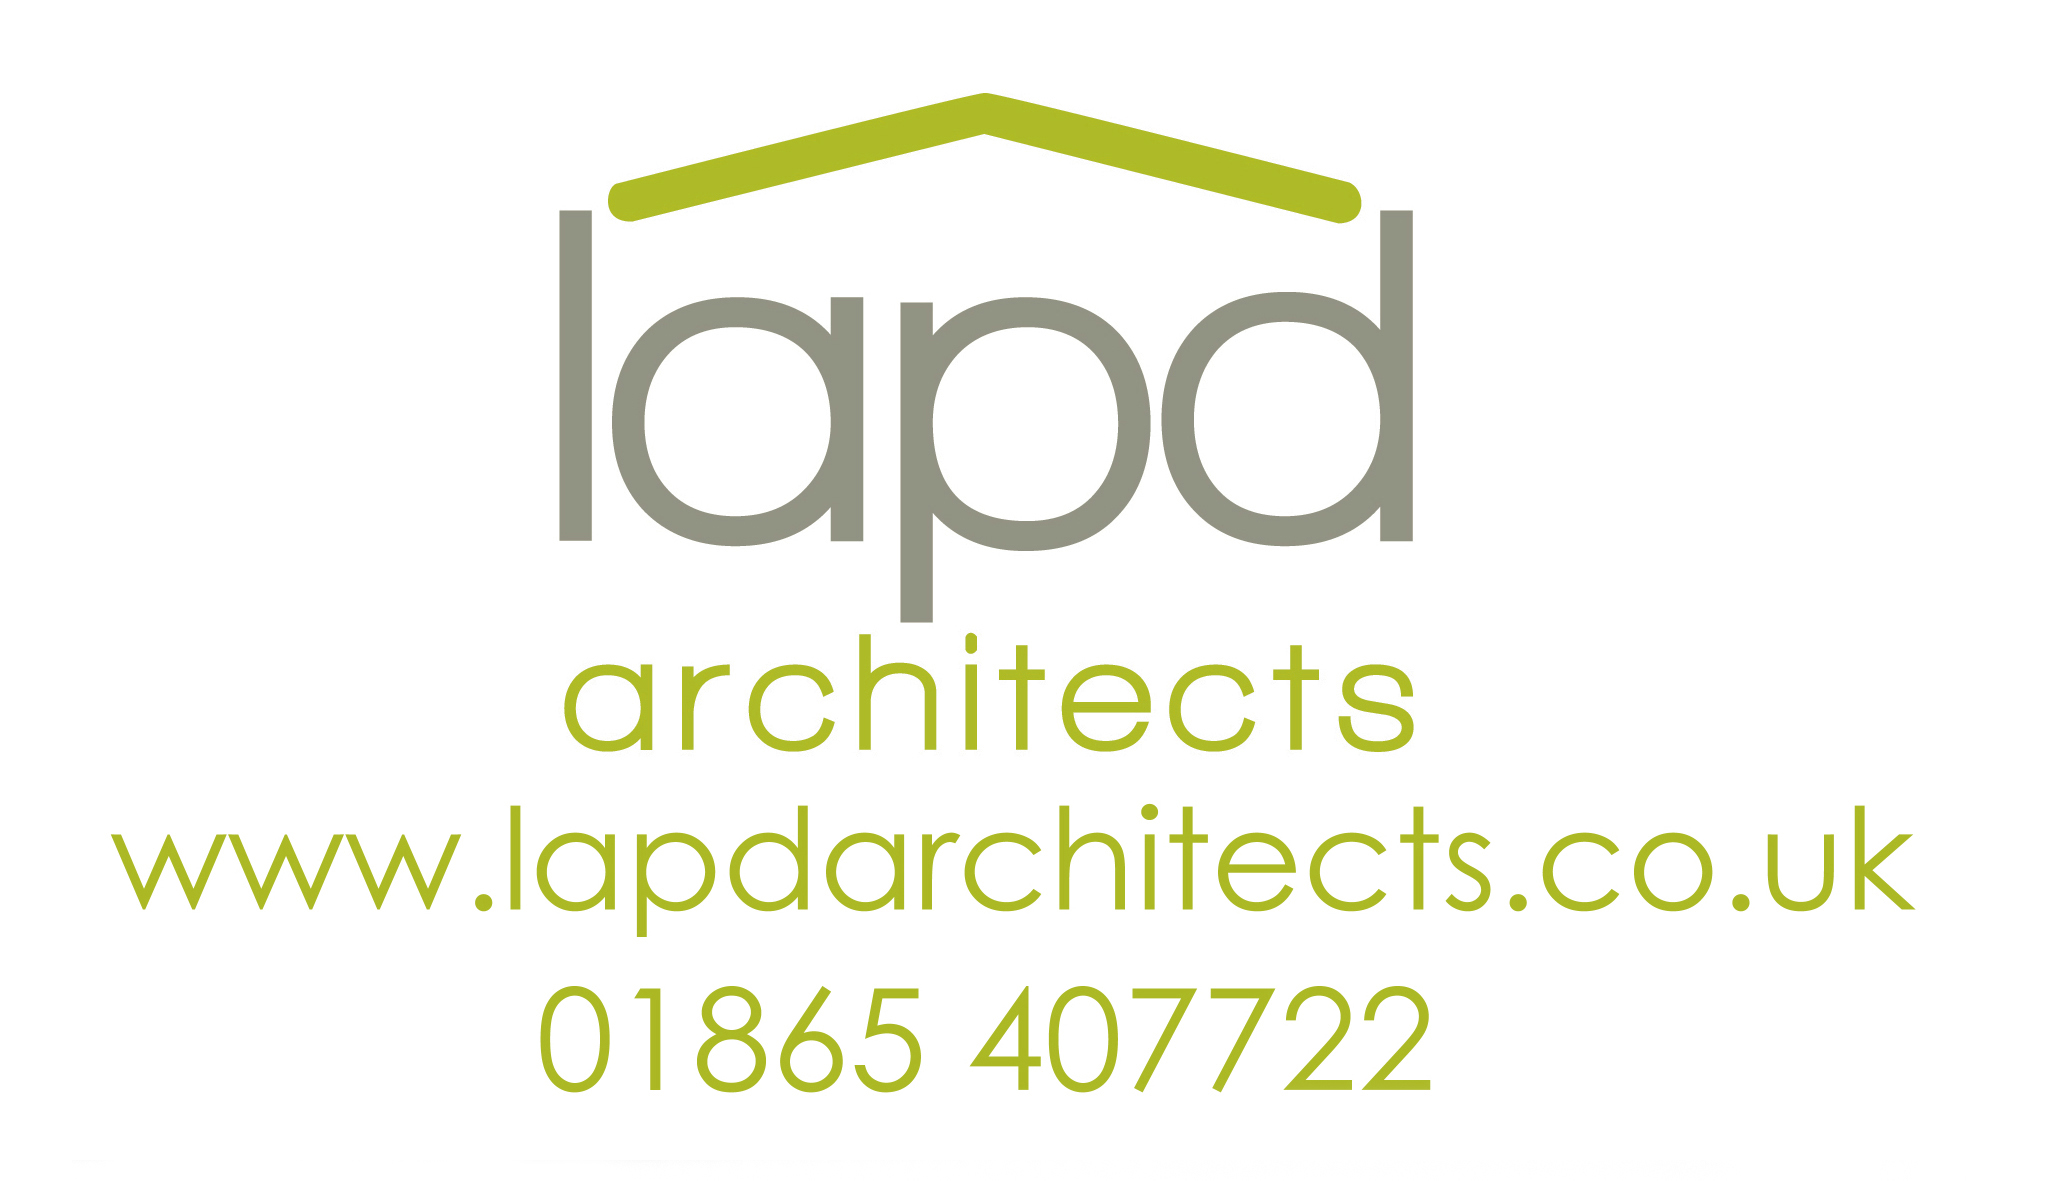 lapd architects - Logo